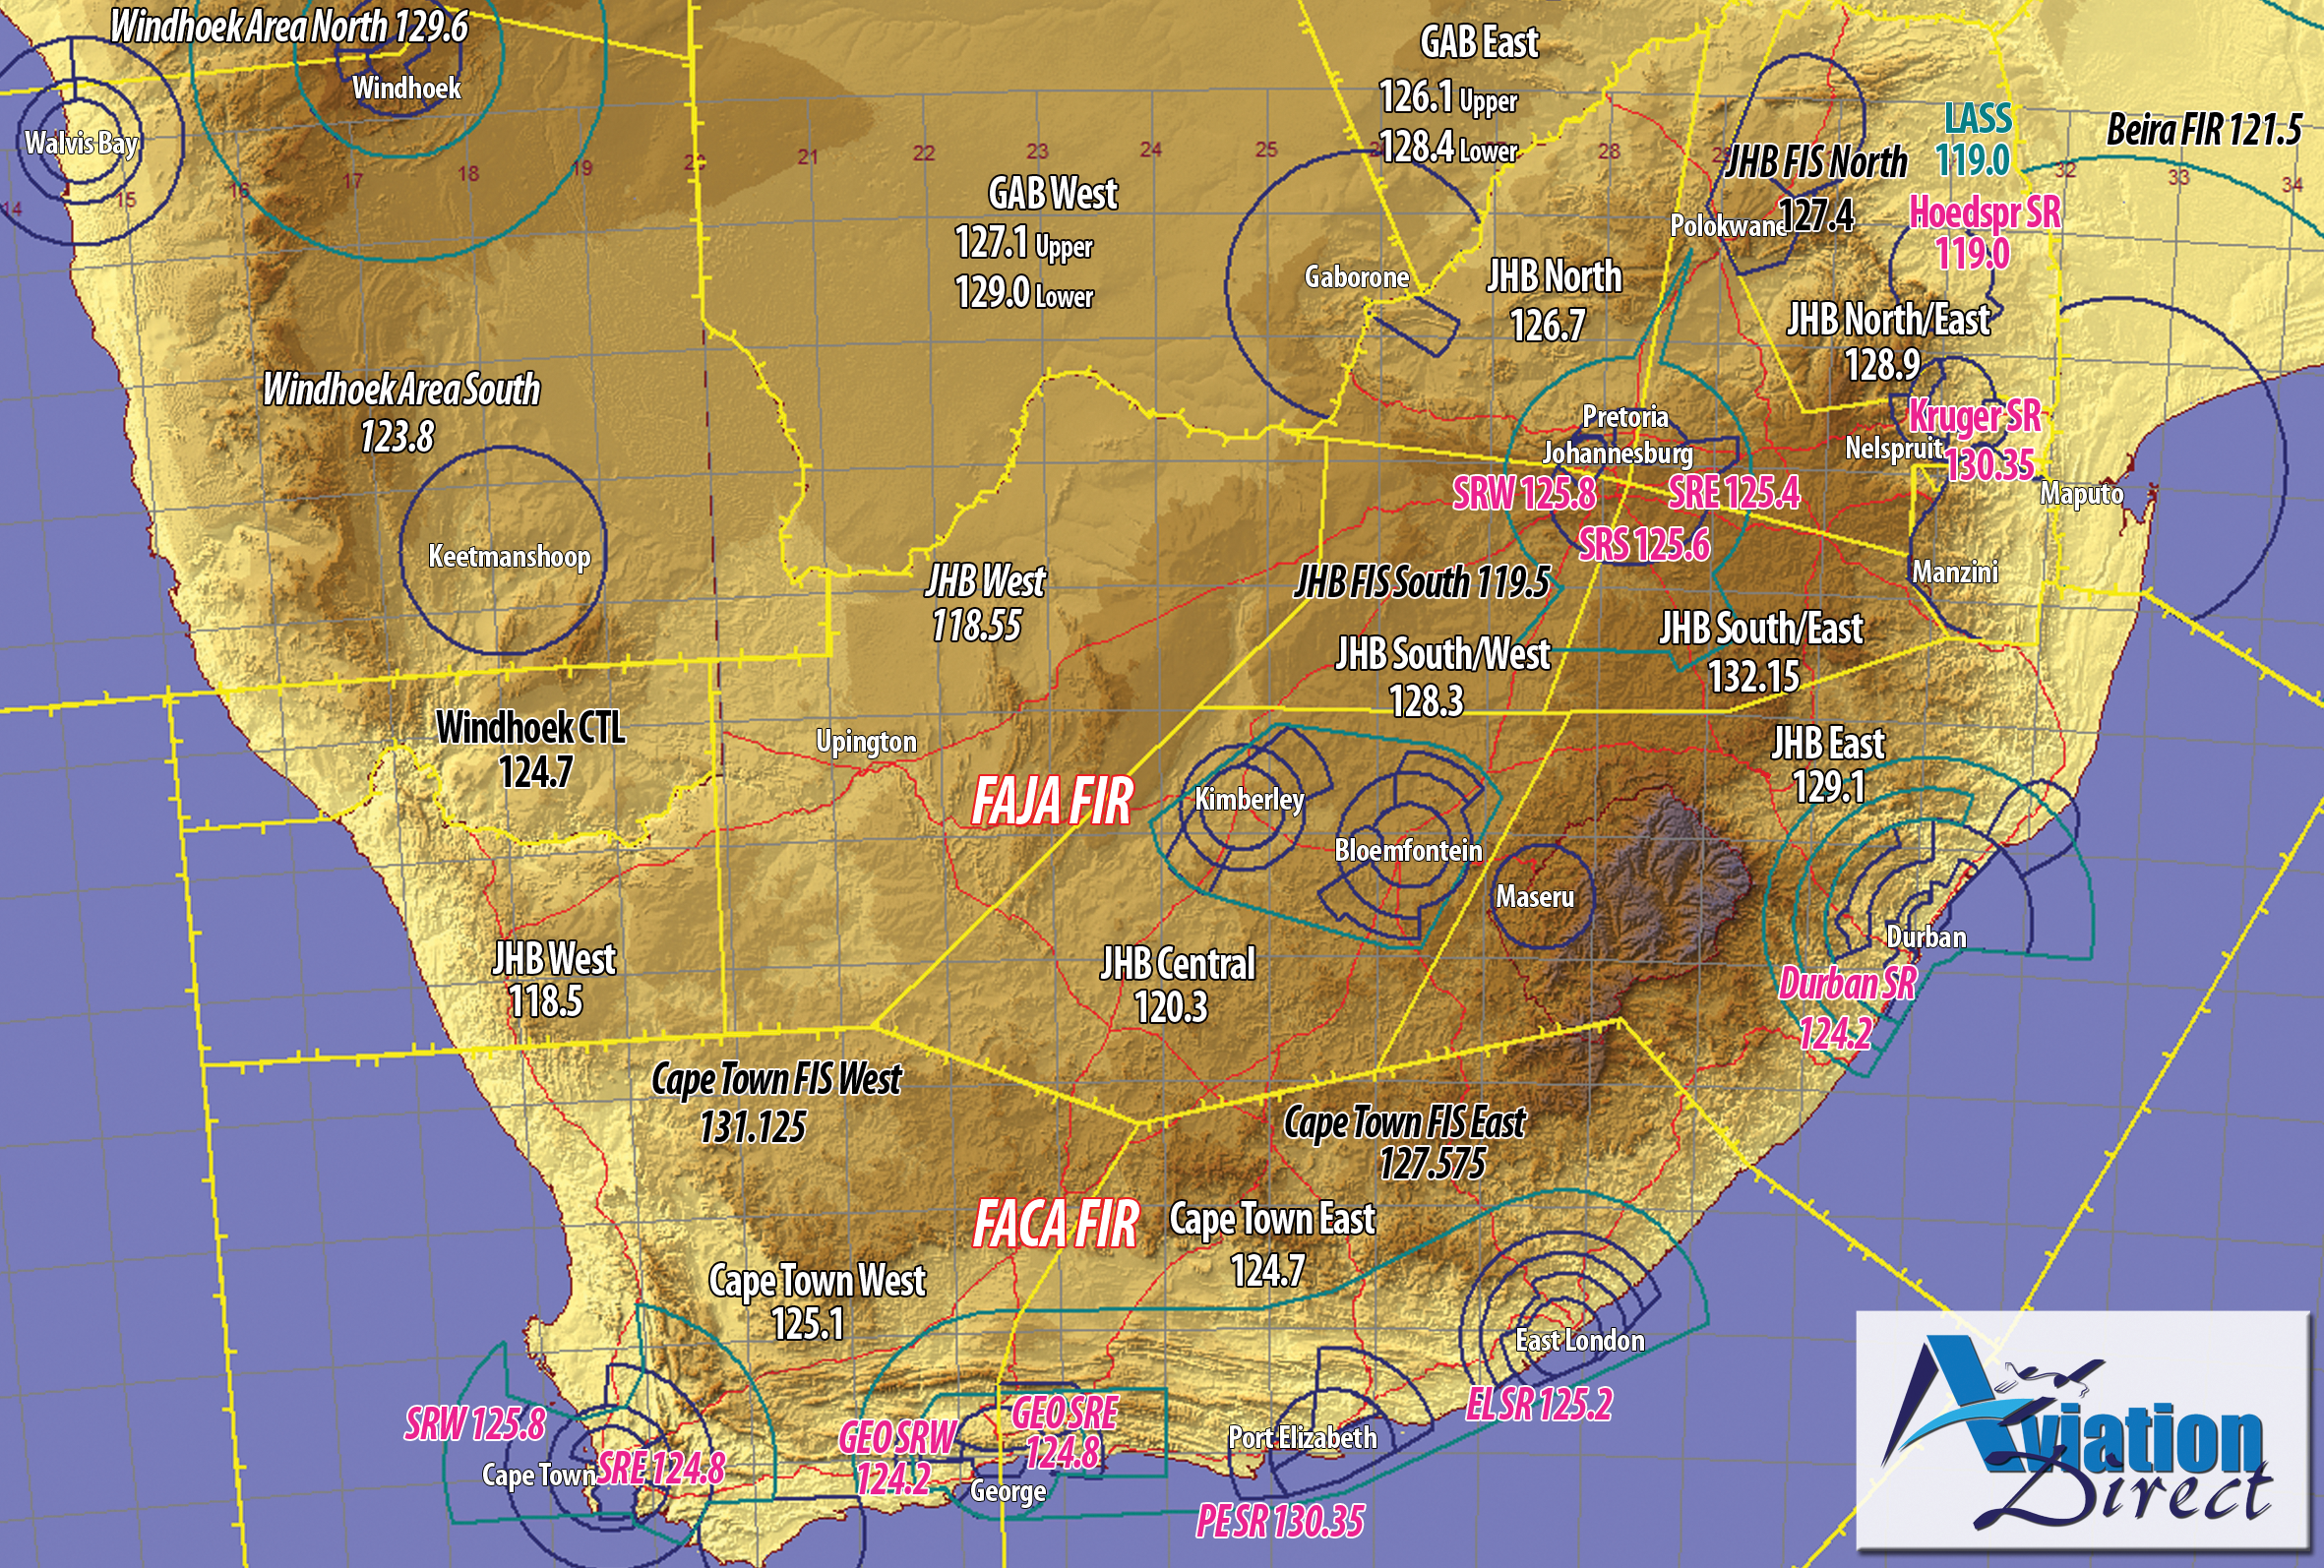 Sector Boundaries and FIR Boundaries for South Africa • Aviation